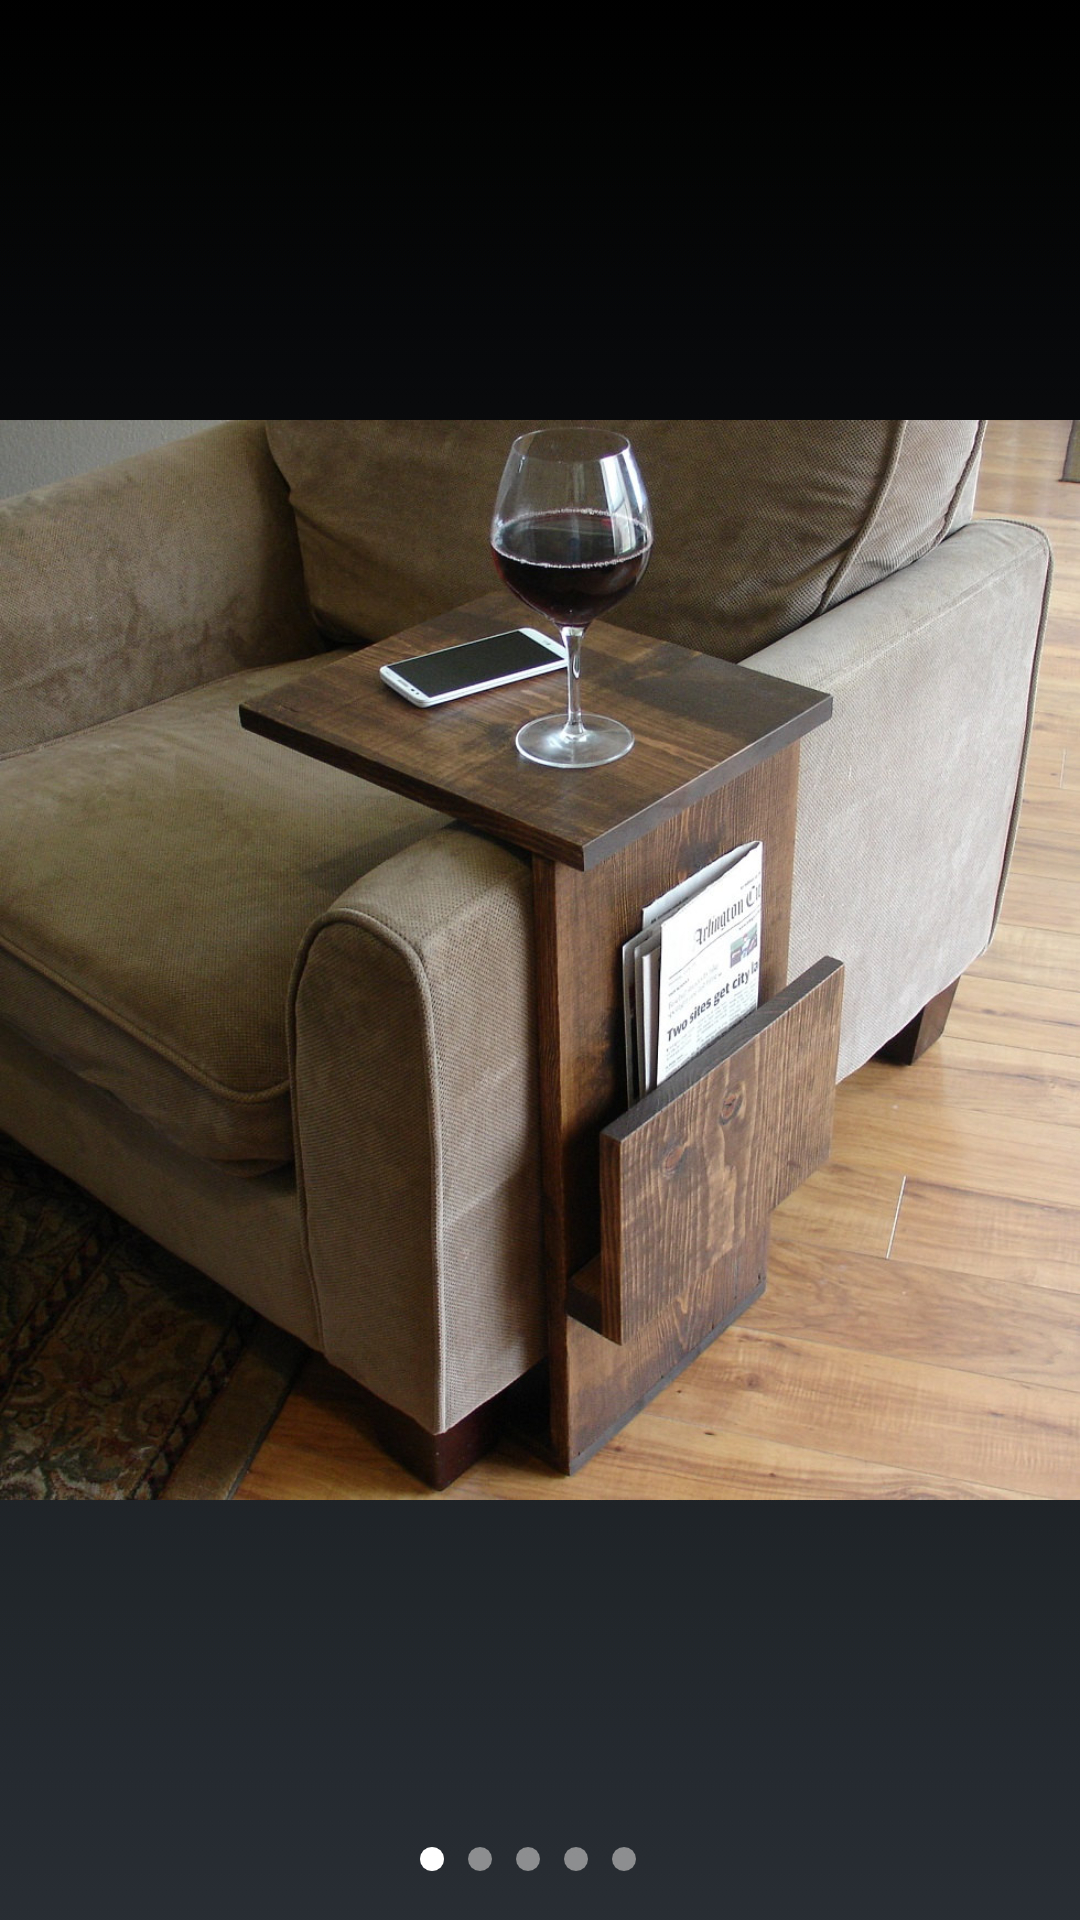 High Quality Sofa Chair Arm Rest Tray Table Stand With Side Storage